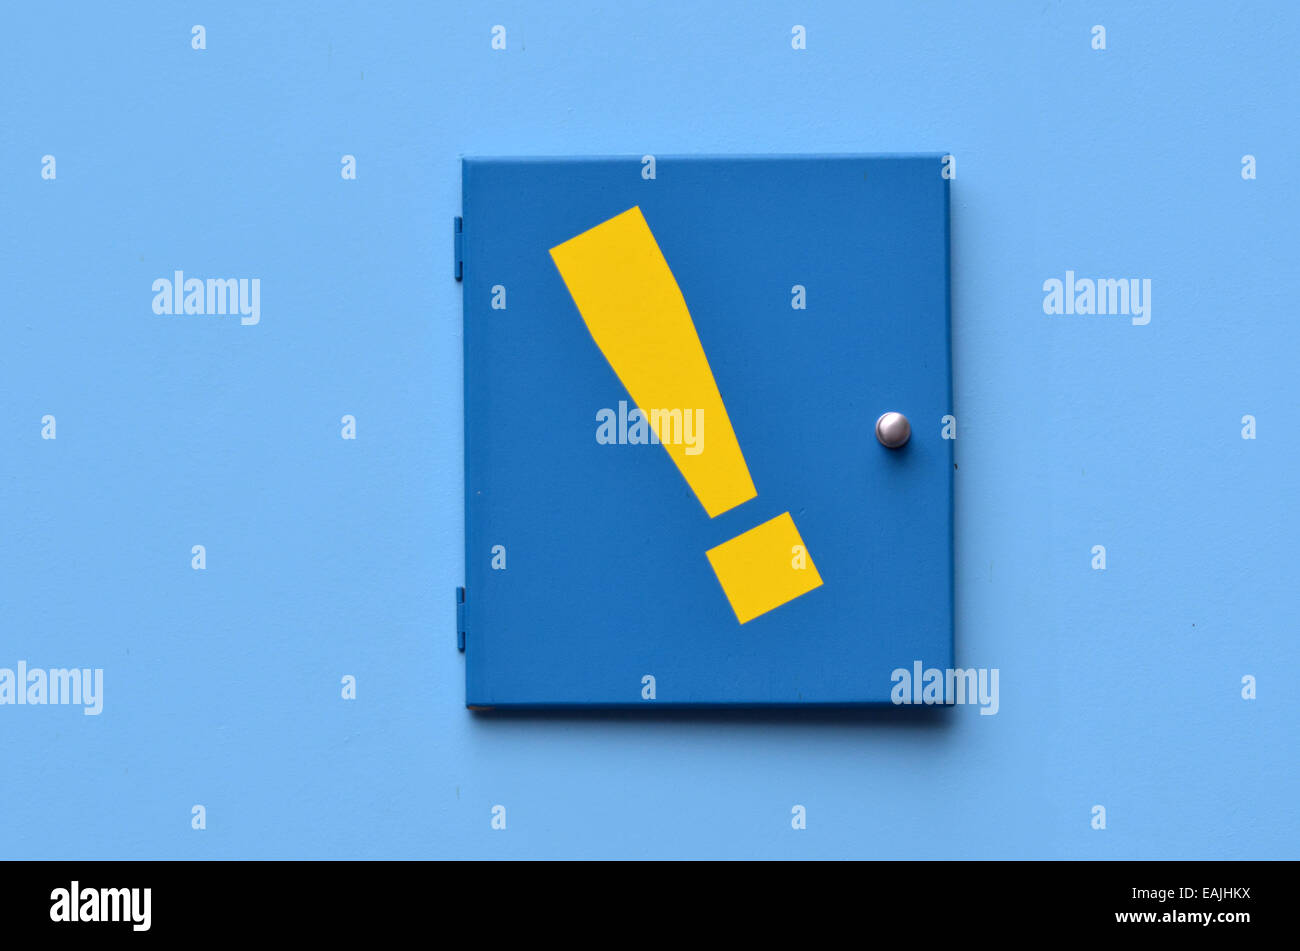 Exclamation mark - exclamation point background.Concept photo of strong feelings. - Stock Image